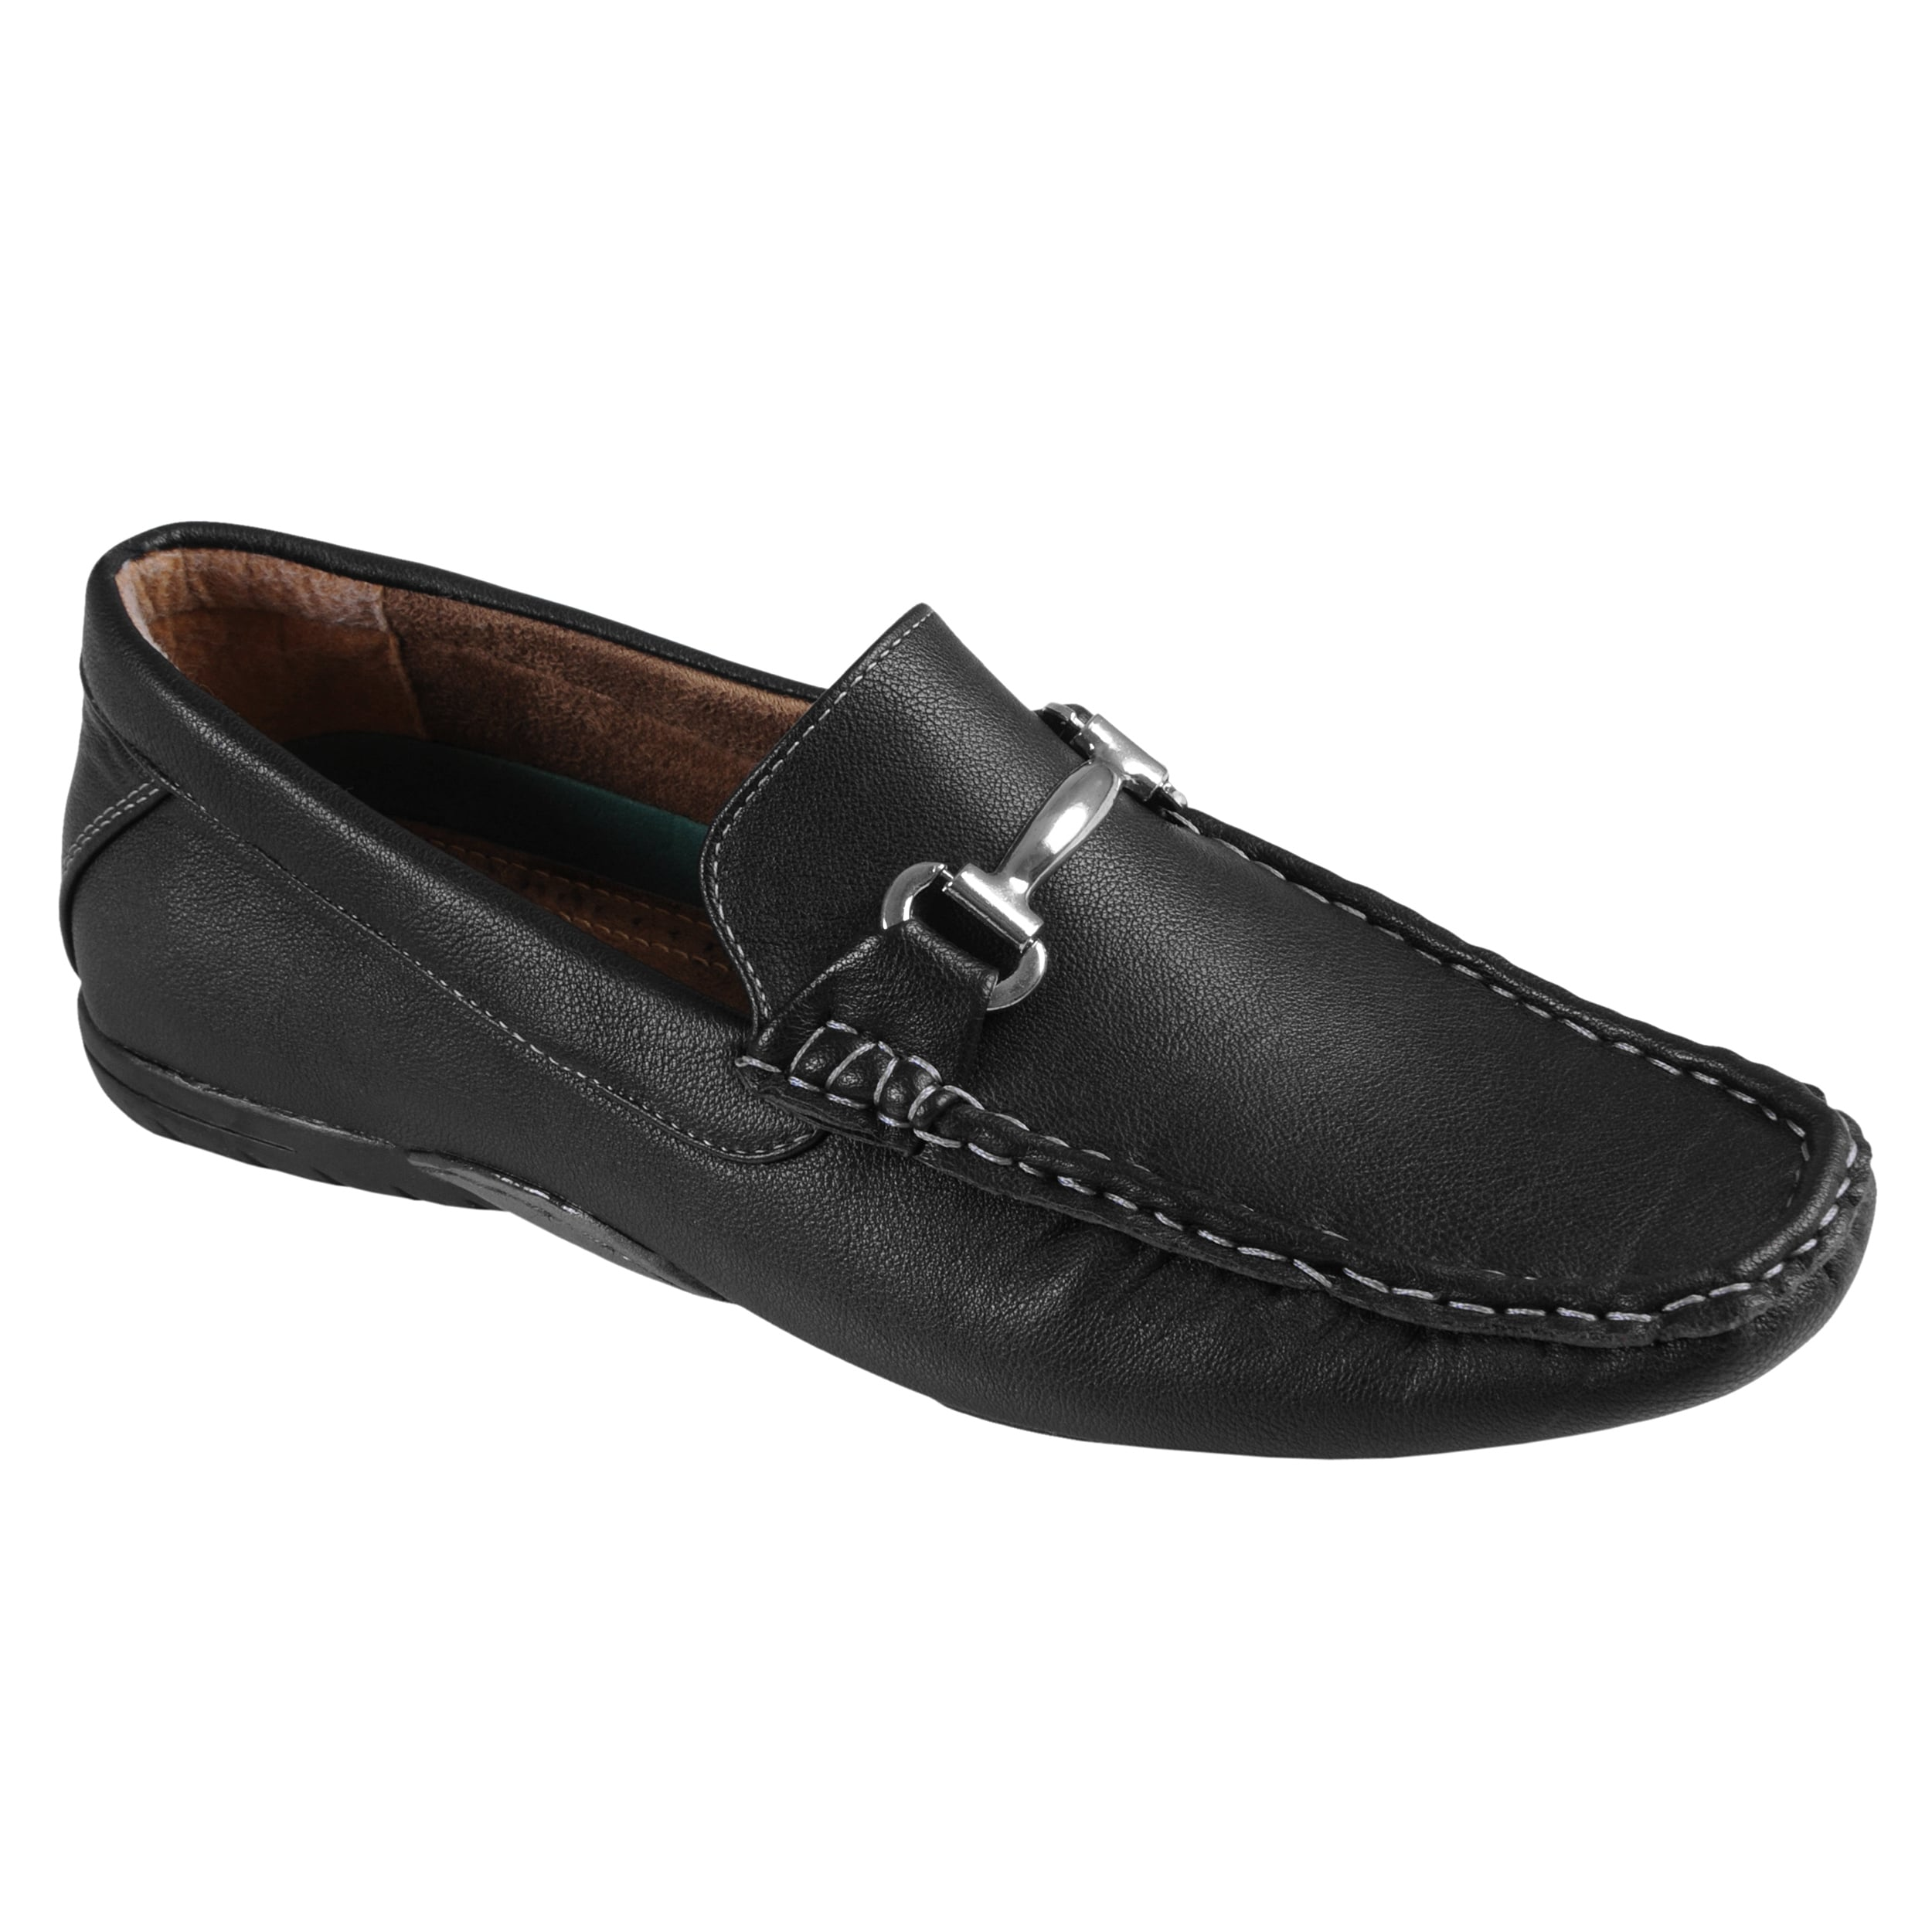 Oxford and Finch Men's Topstitched Hardware Accent Loafers